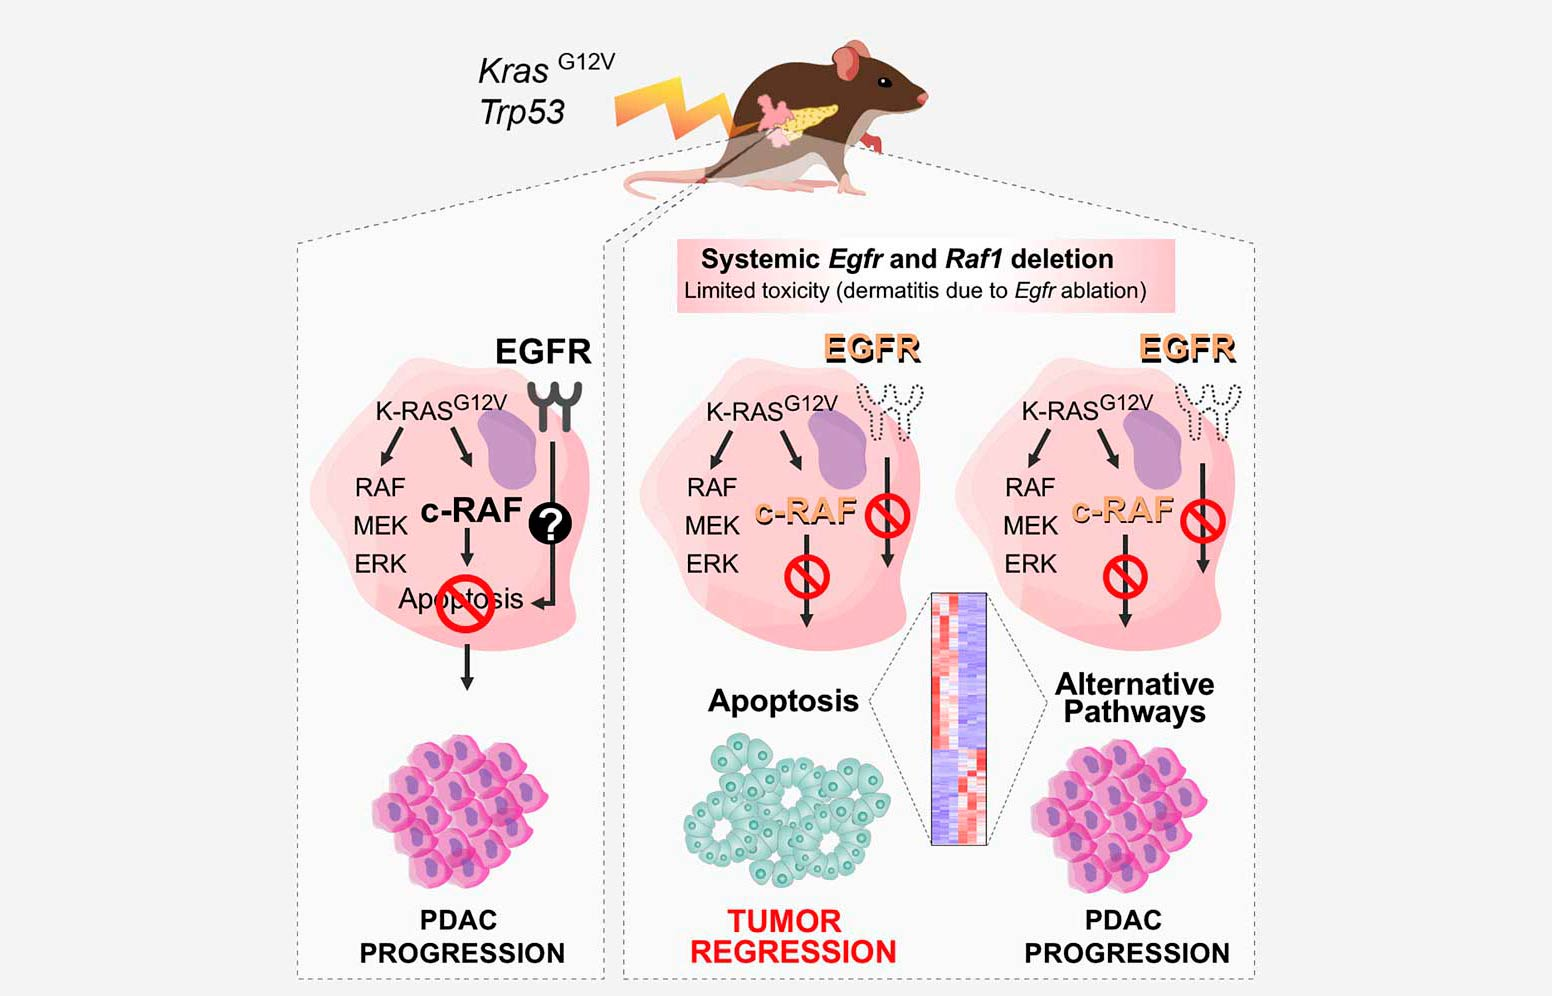 Complete Regression of Advanced Pancreatic Ductal Adenocarcinomas upon Combined Inhibition of EGFR and C-RAF